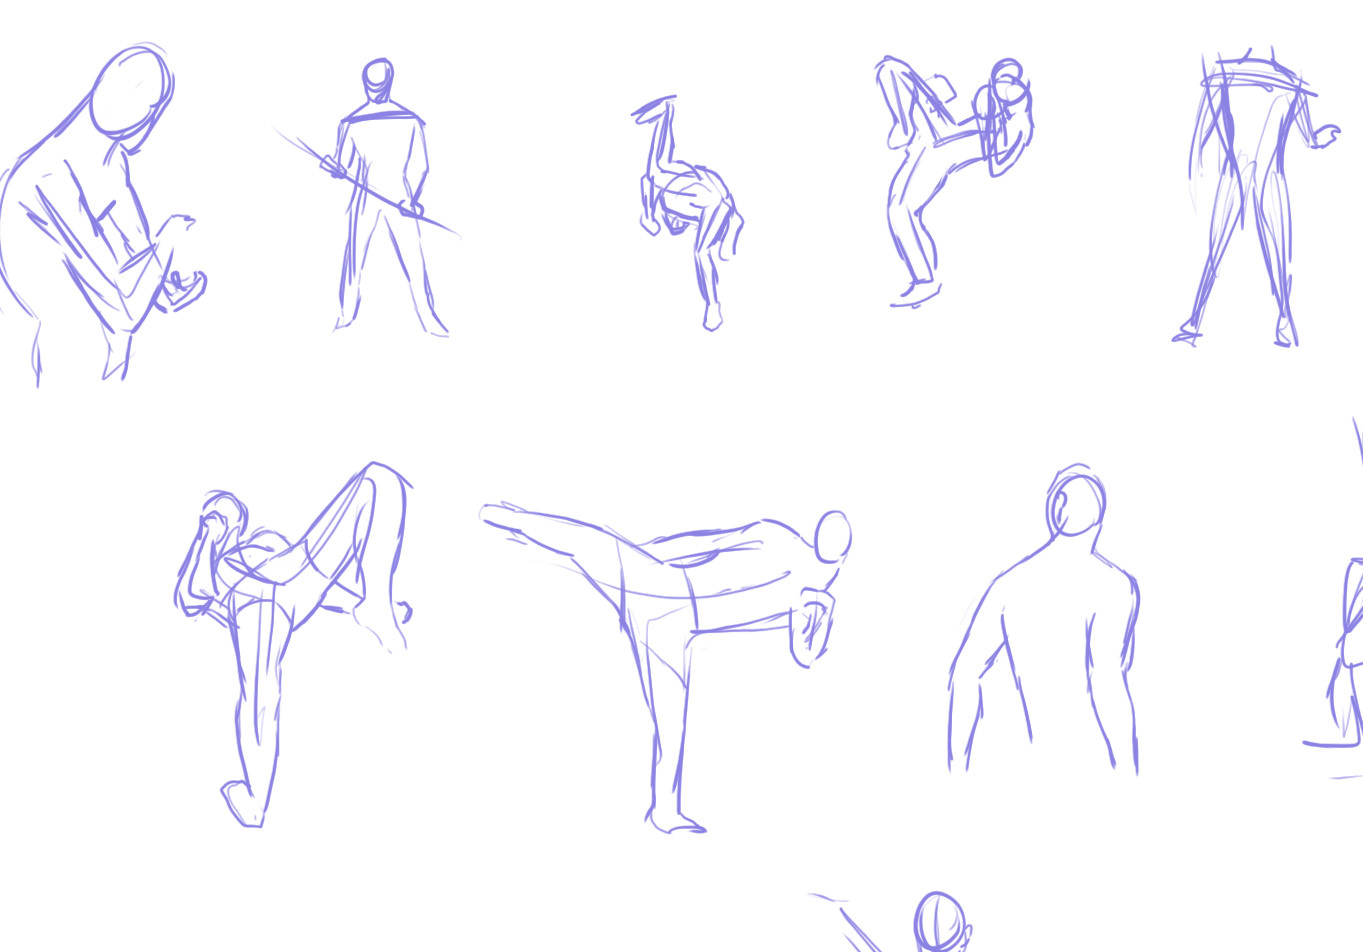 1000 Poses challenge  (and others) - General - Forums